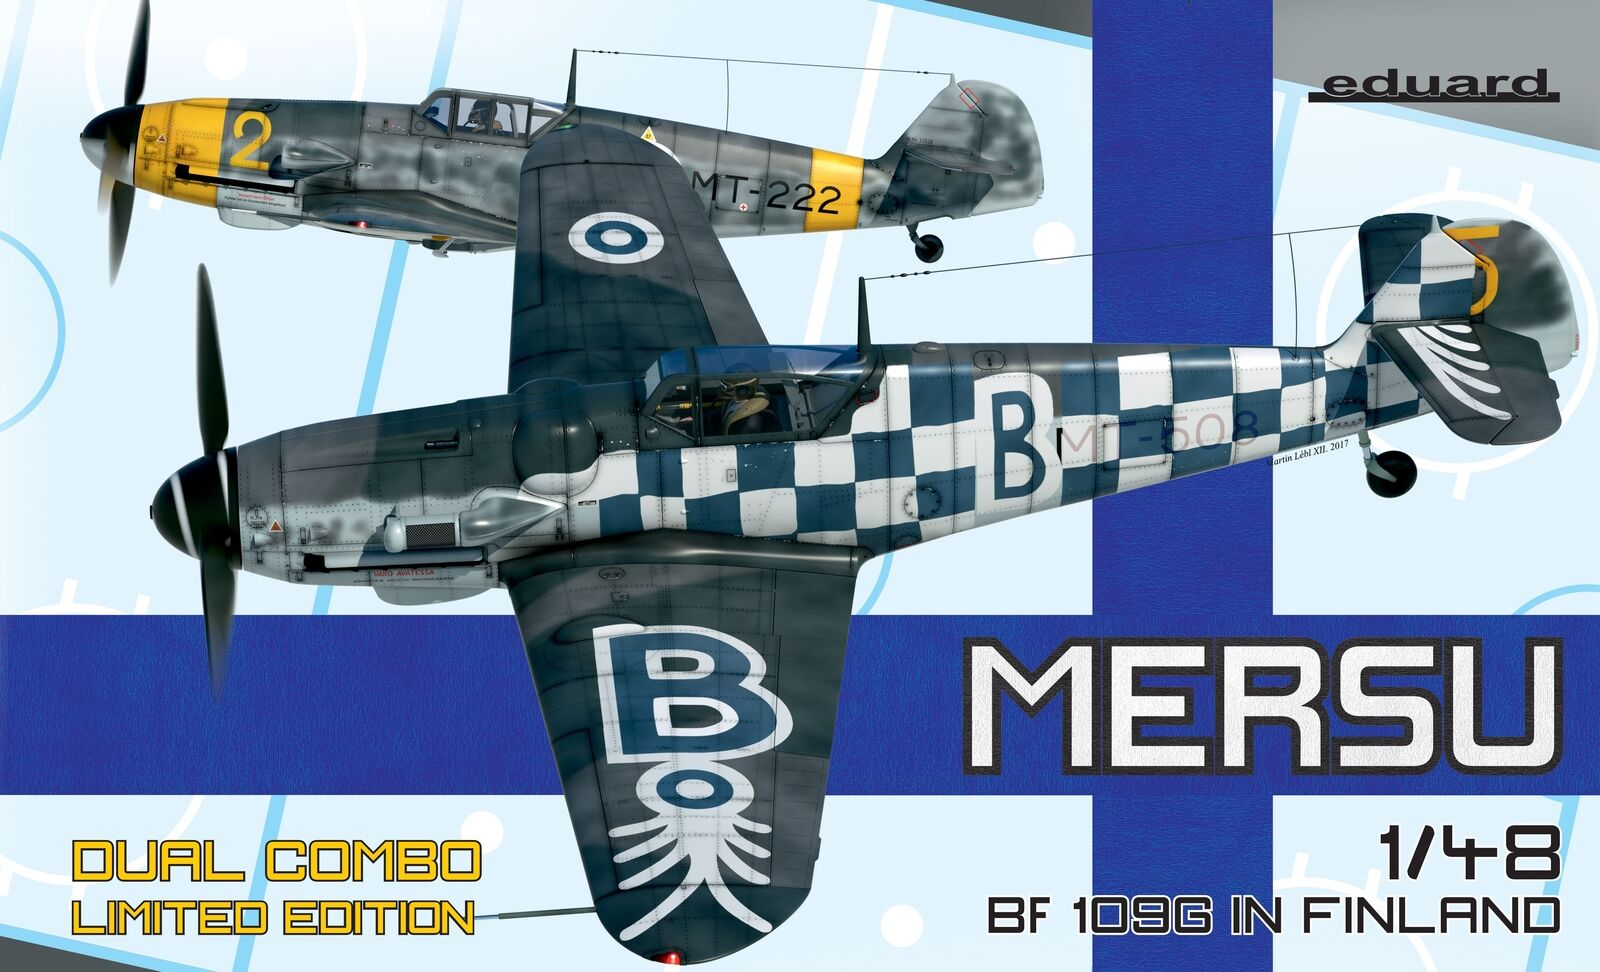 Eduard 1 48 Mersu Bf-109G in Finland Dual Combo Limited Edition K11114